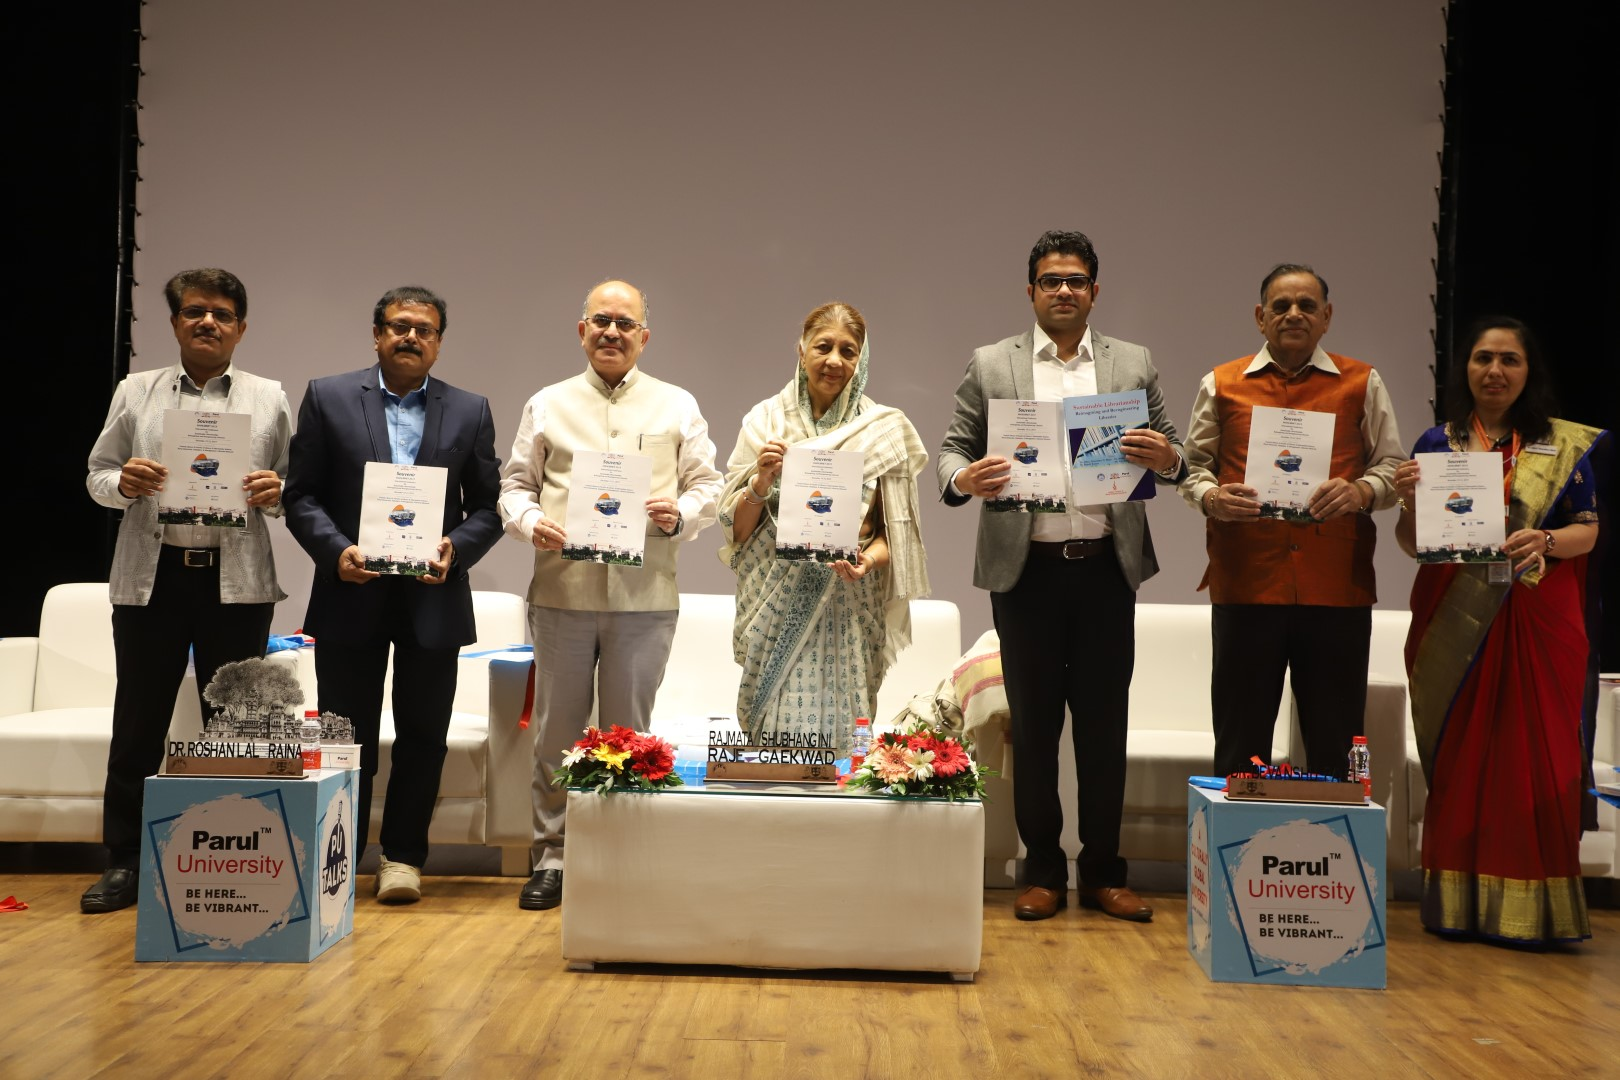 Three day international Conference on Sustainable Librarianship at Parul University